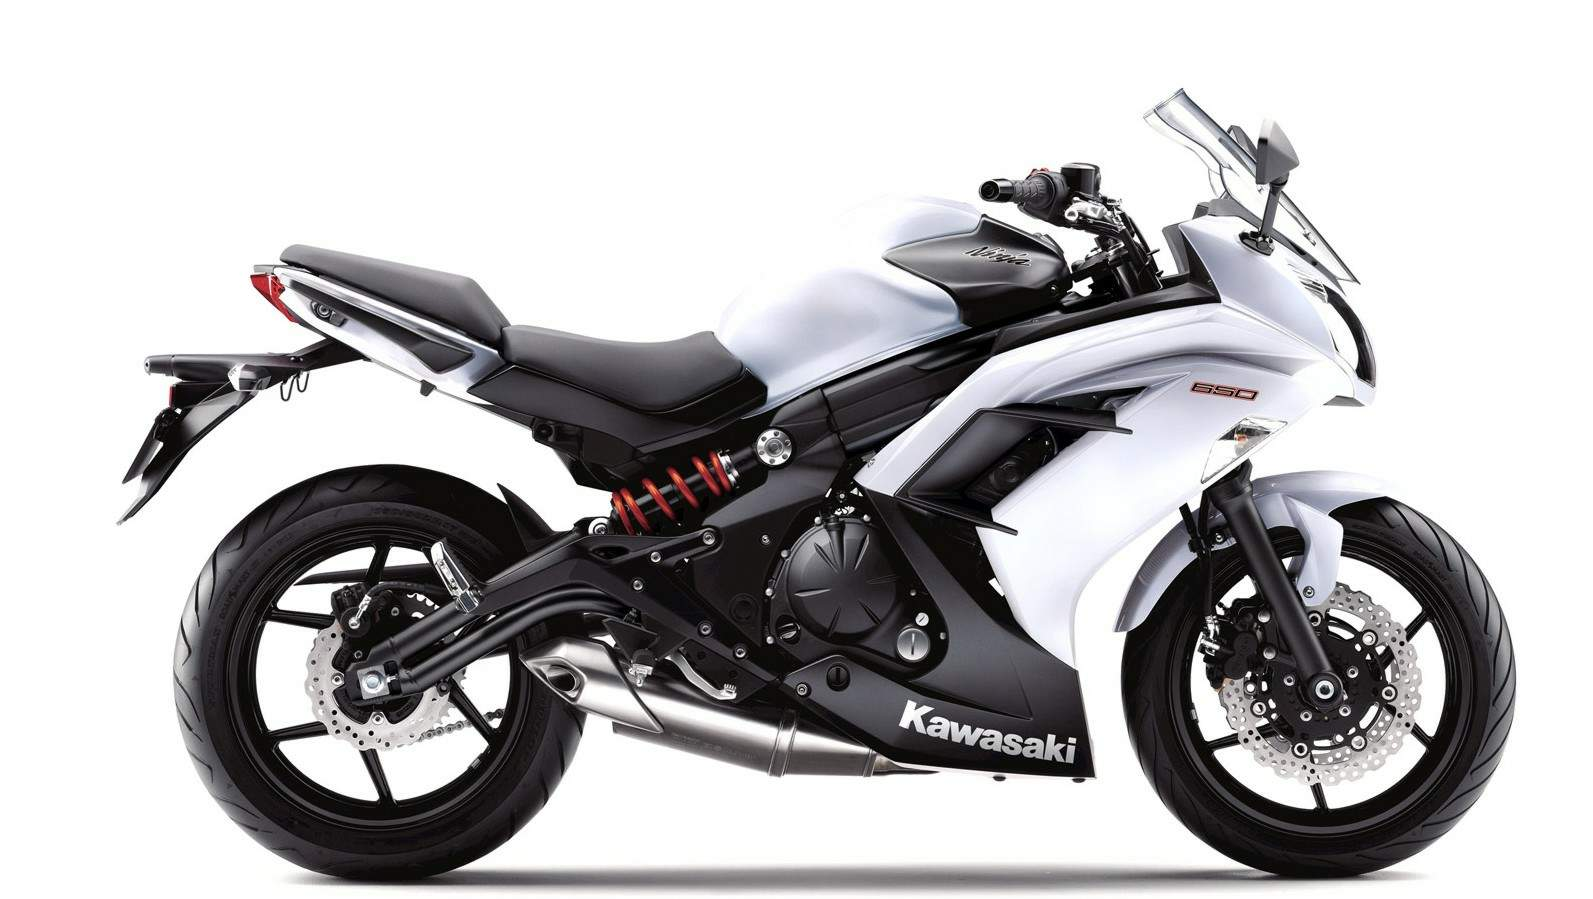 Kawasaki Ninja 300 Price India